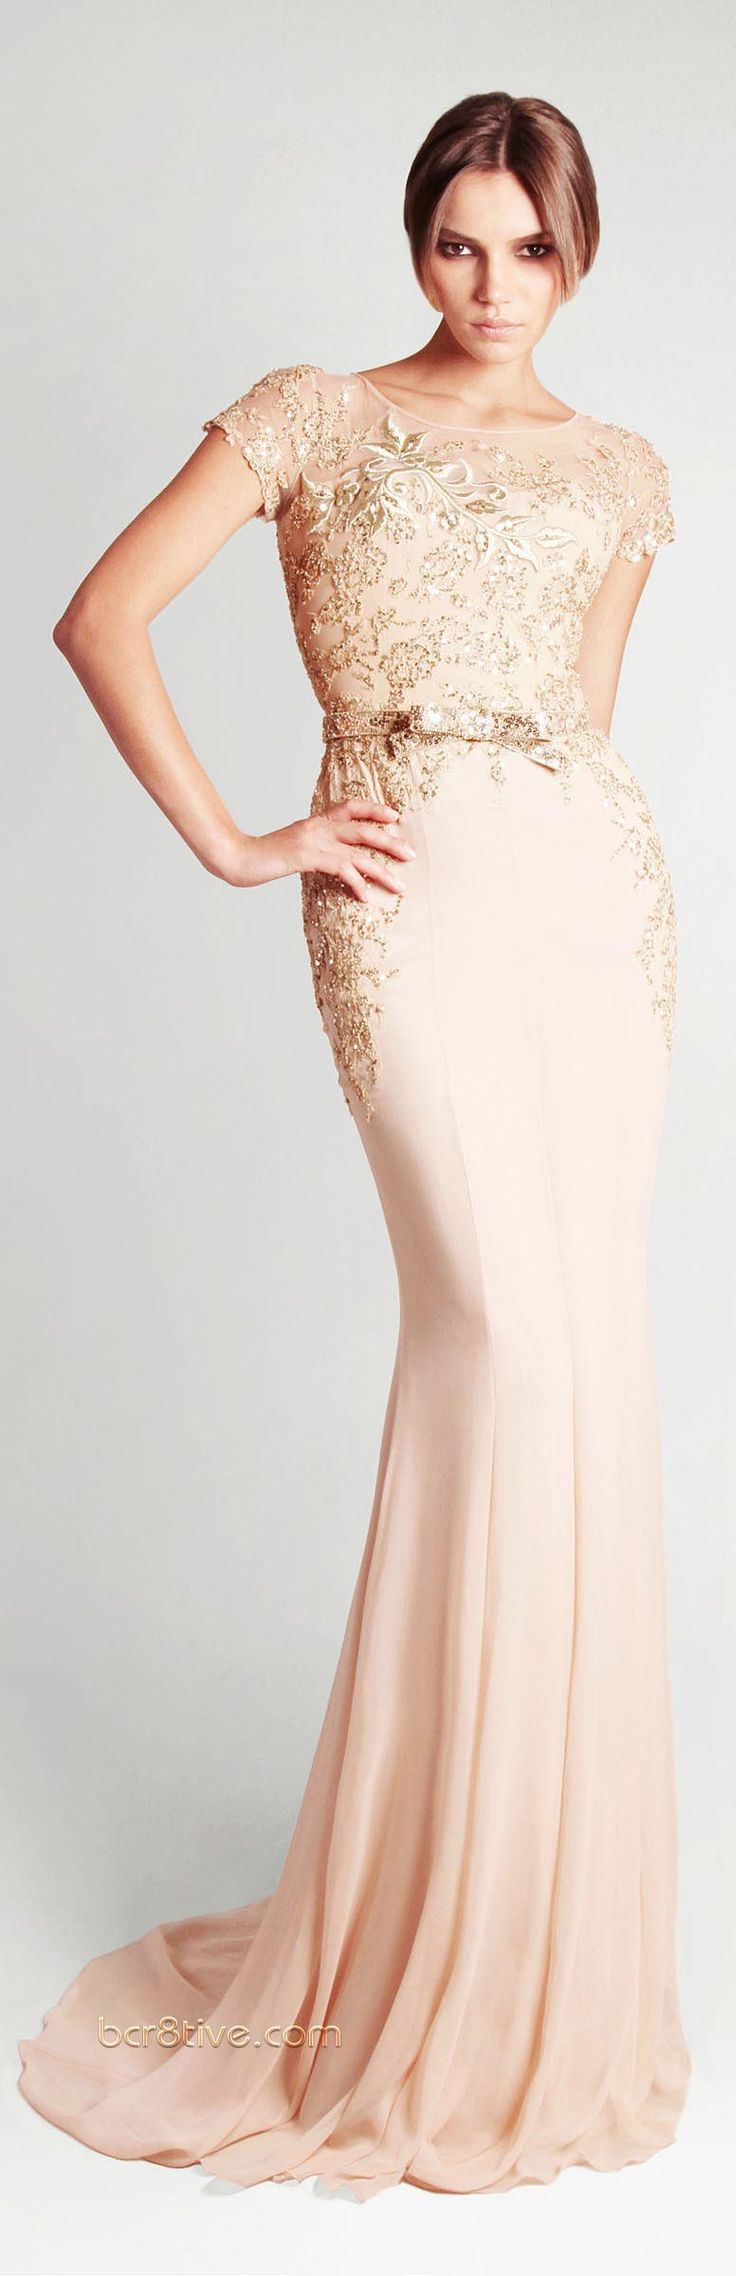 Georges Hobeika Spring Summer 2013 Ready to Wear Signature Collection